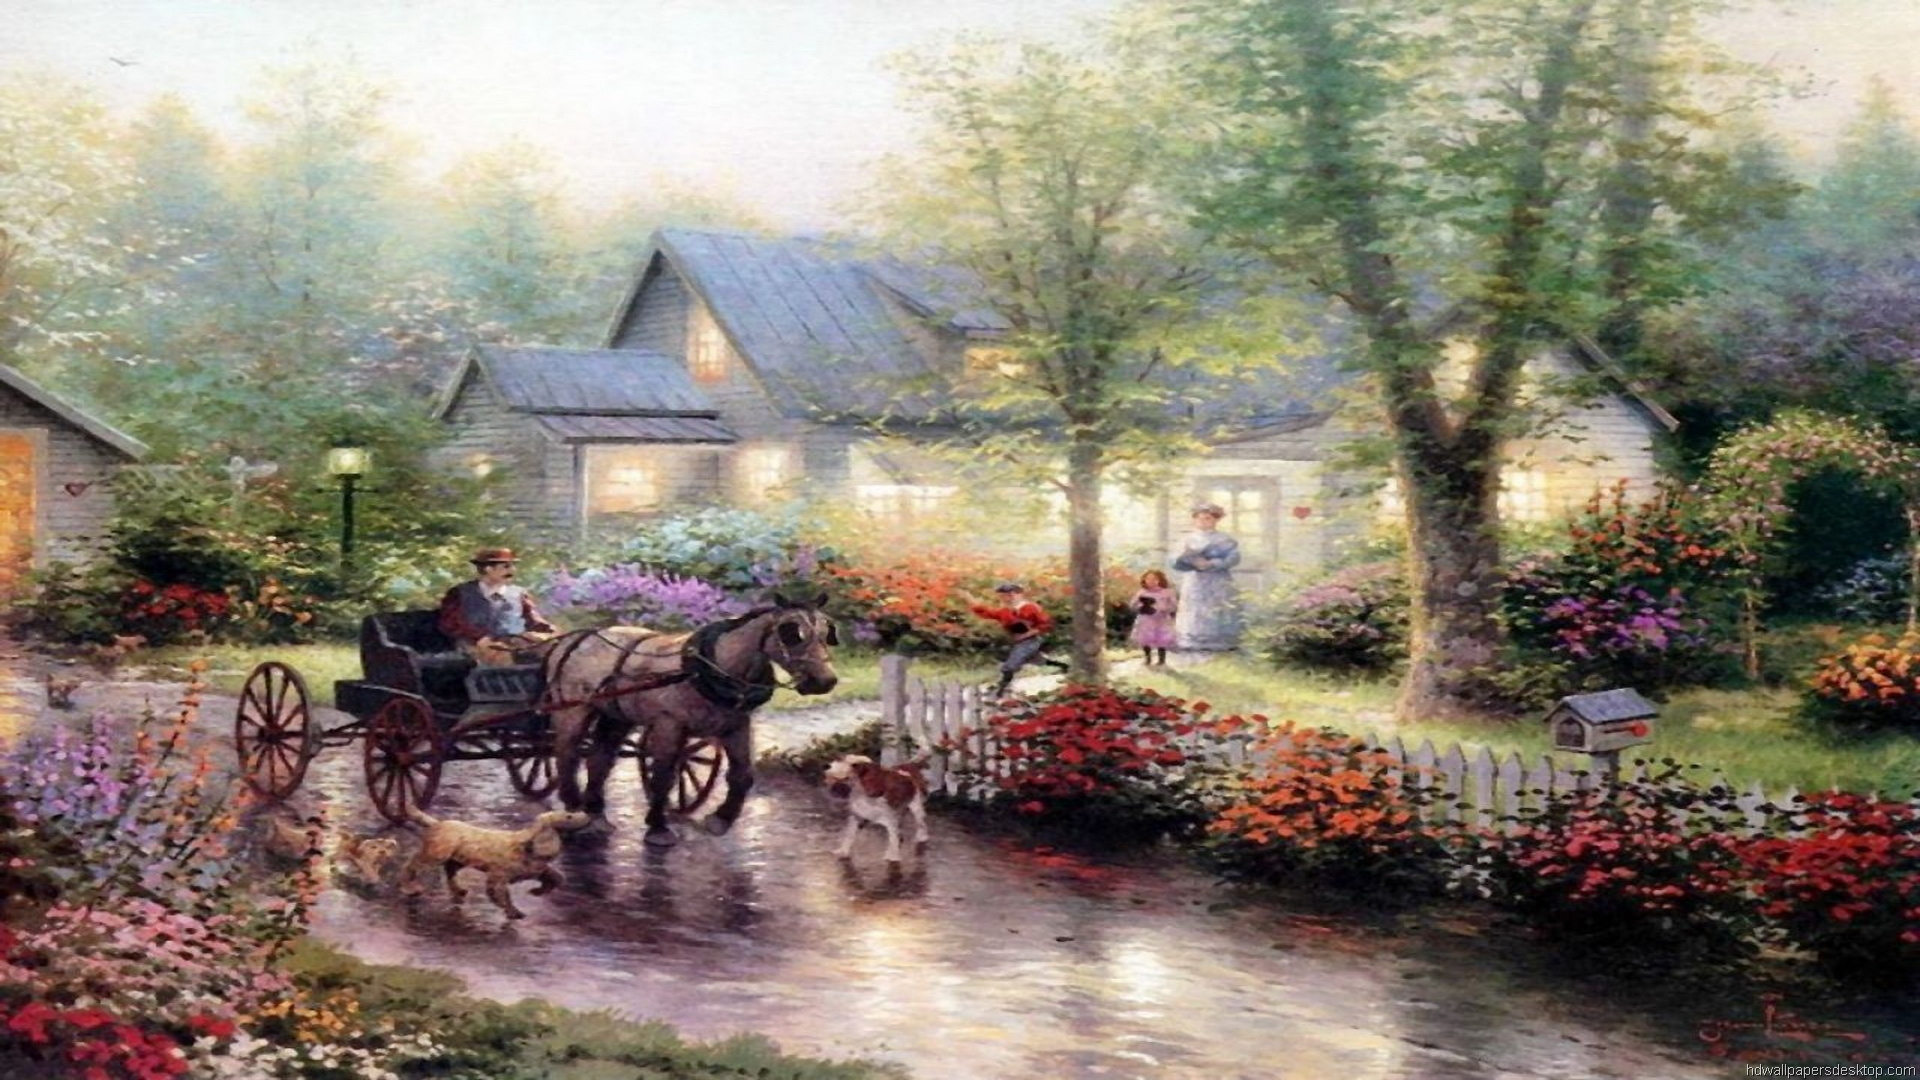 thomas kinkade wallpaper 1920x1080 - photo #7